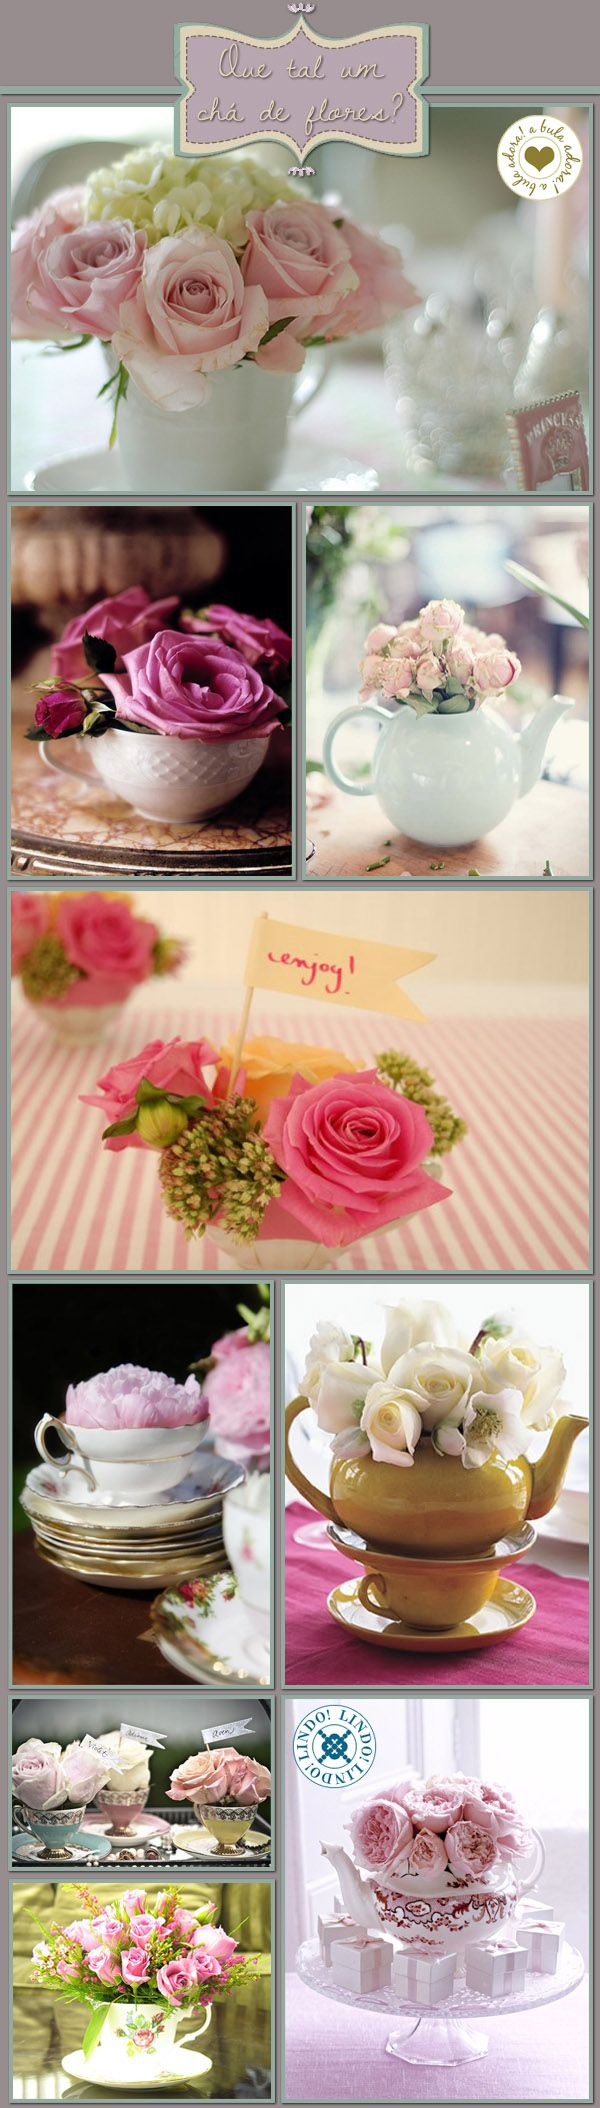 teapots and cups filled with flowers